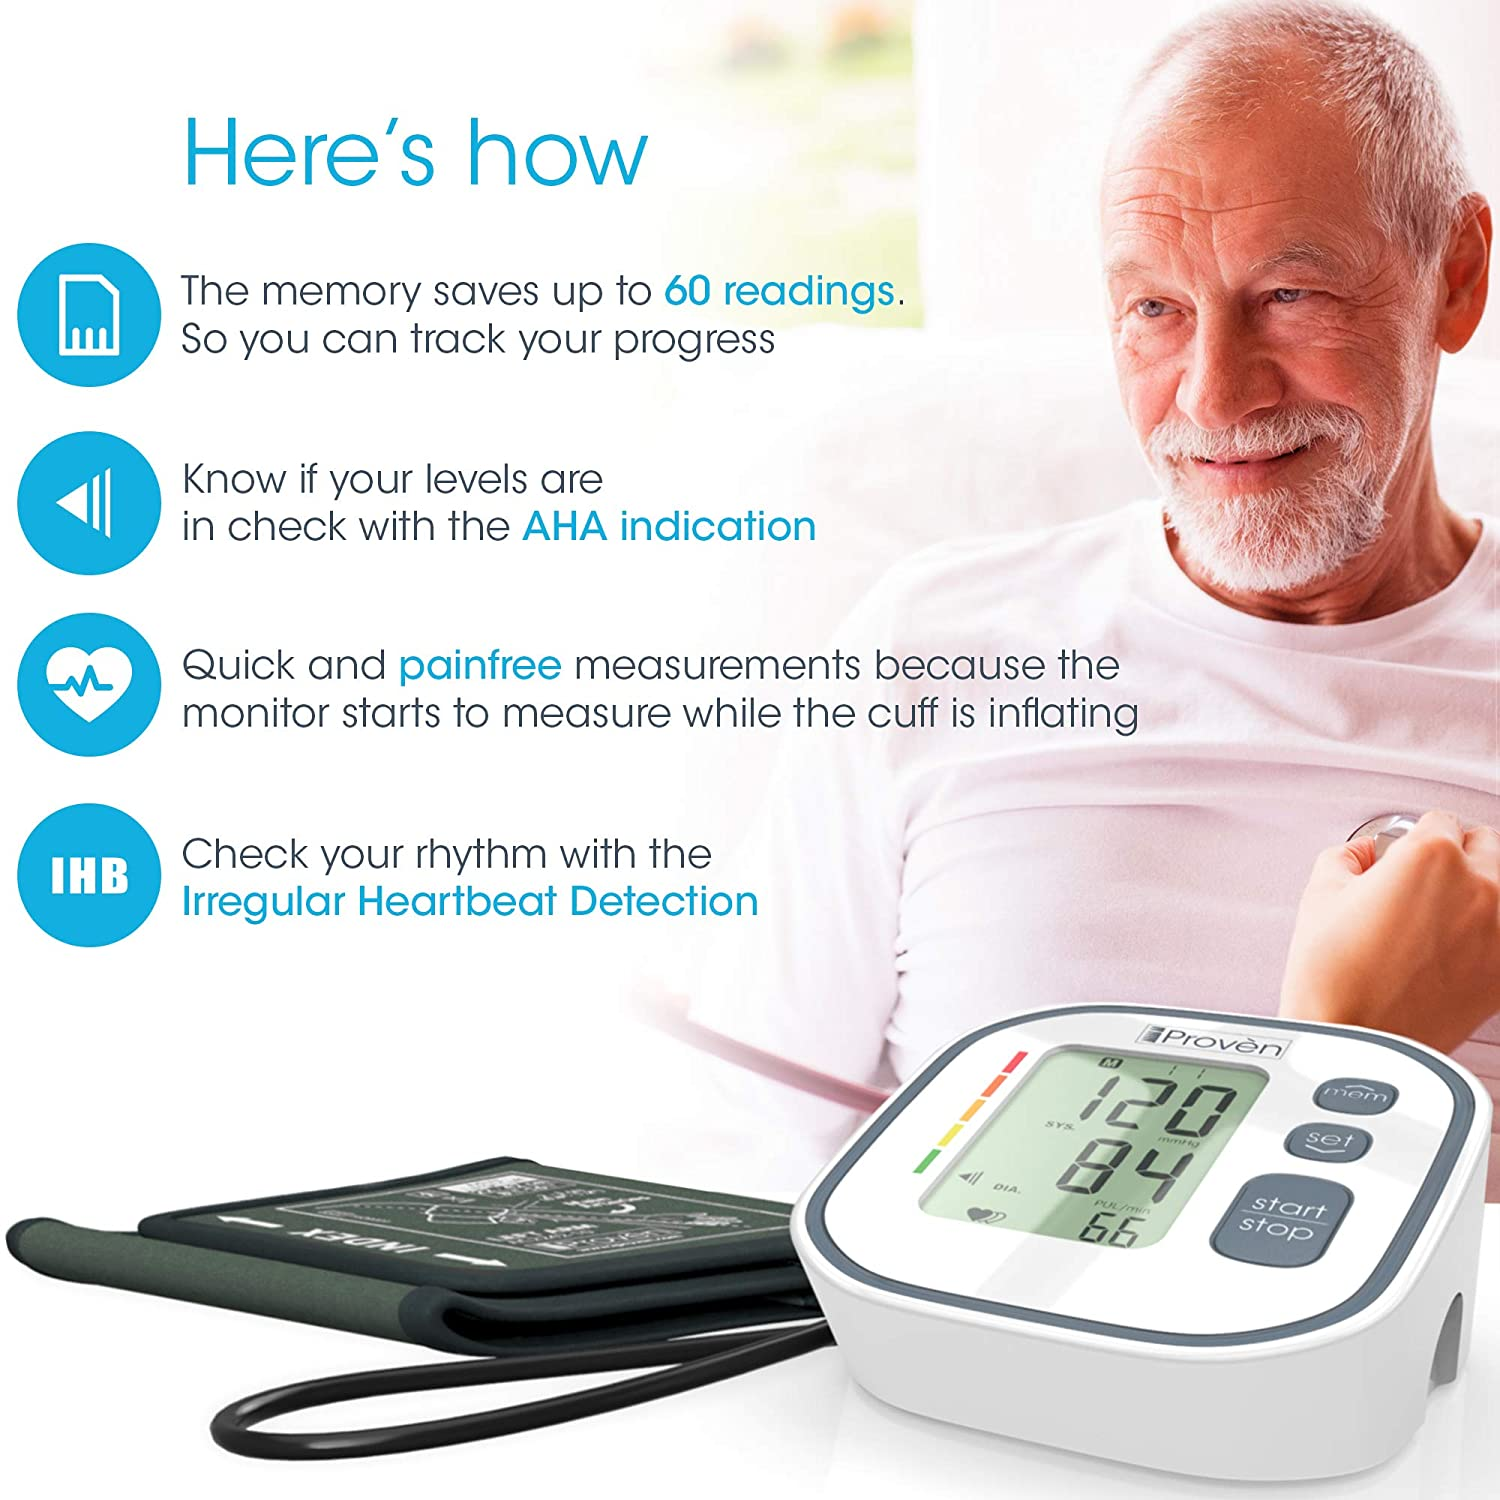 Amazon.com: Blood Pressure Monitor Upper Arm BPM-634 - Automatic BP Machine - Top Rated FDA Approved Electronic BP Monitors - Arterial Home BP Cuff Machines ...